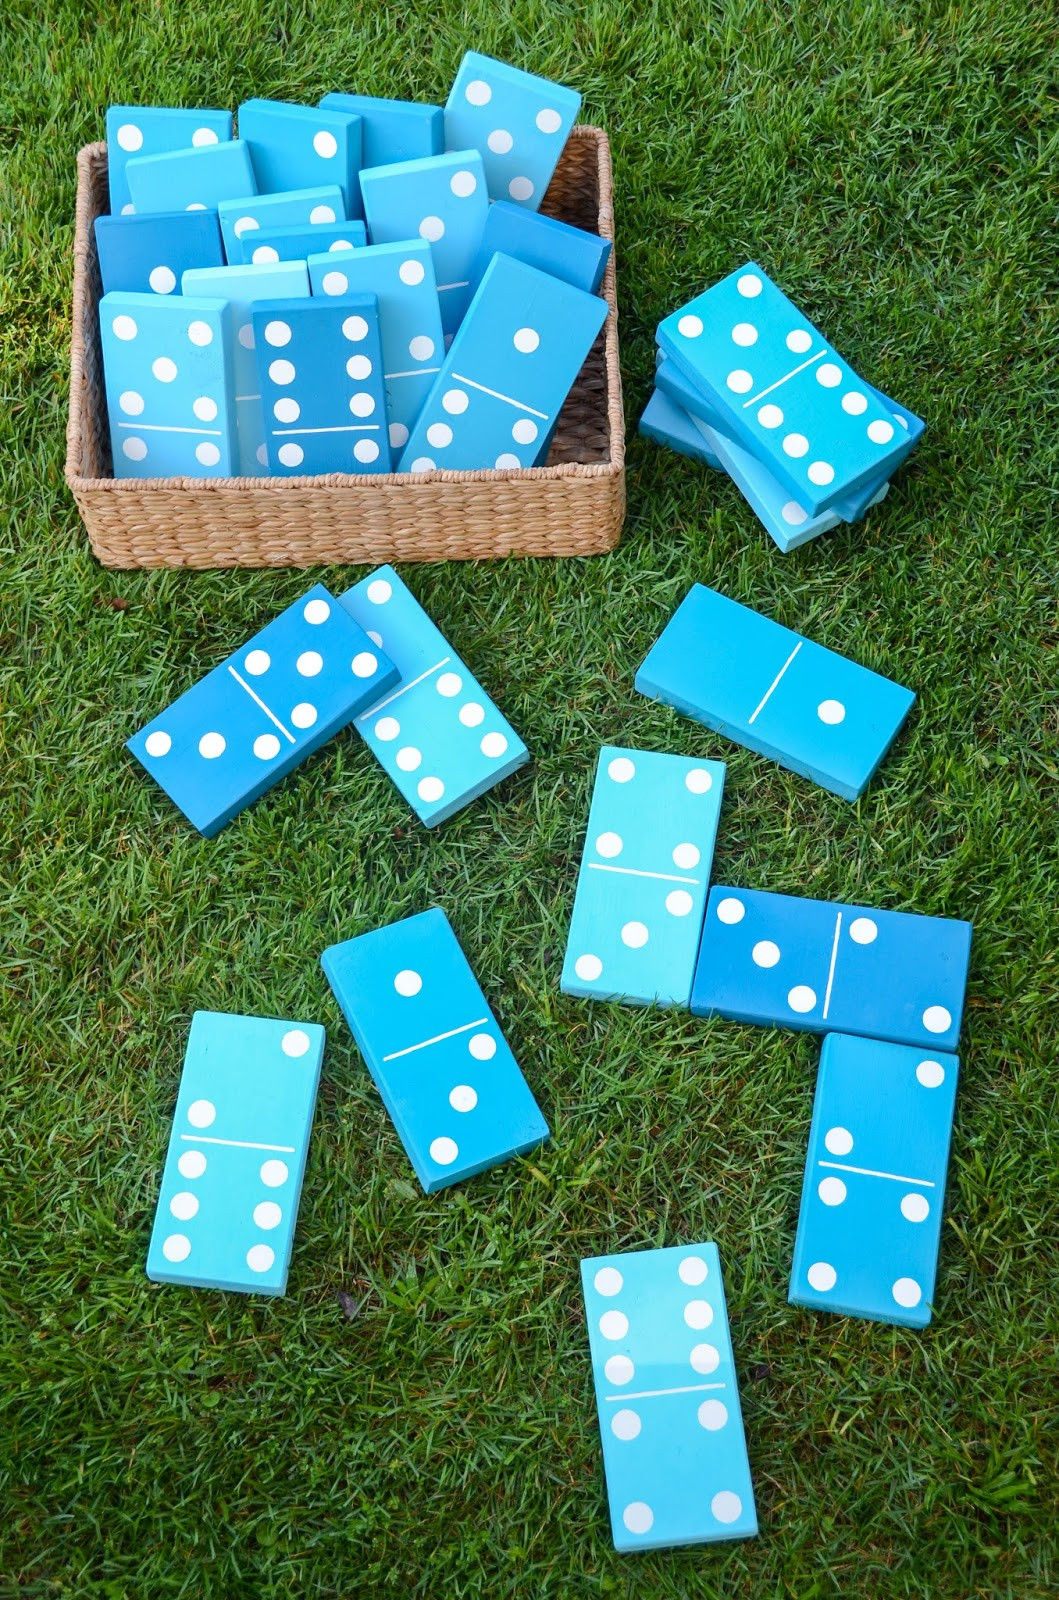 Best ideas about Backyard Games DIY . Save or Pin 17 DIY Games for Outdoor Family Fun Now.